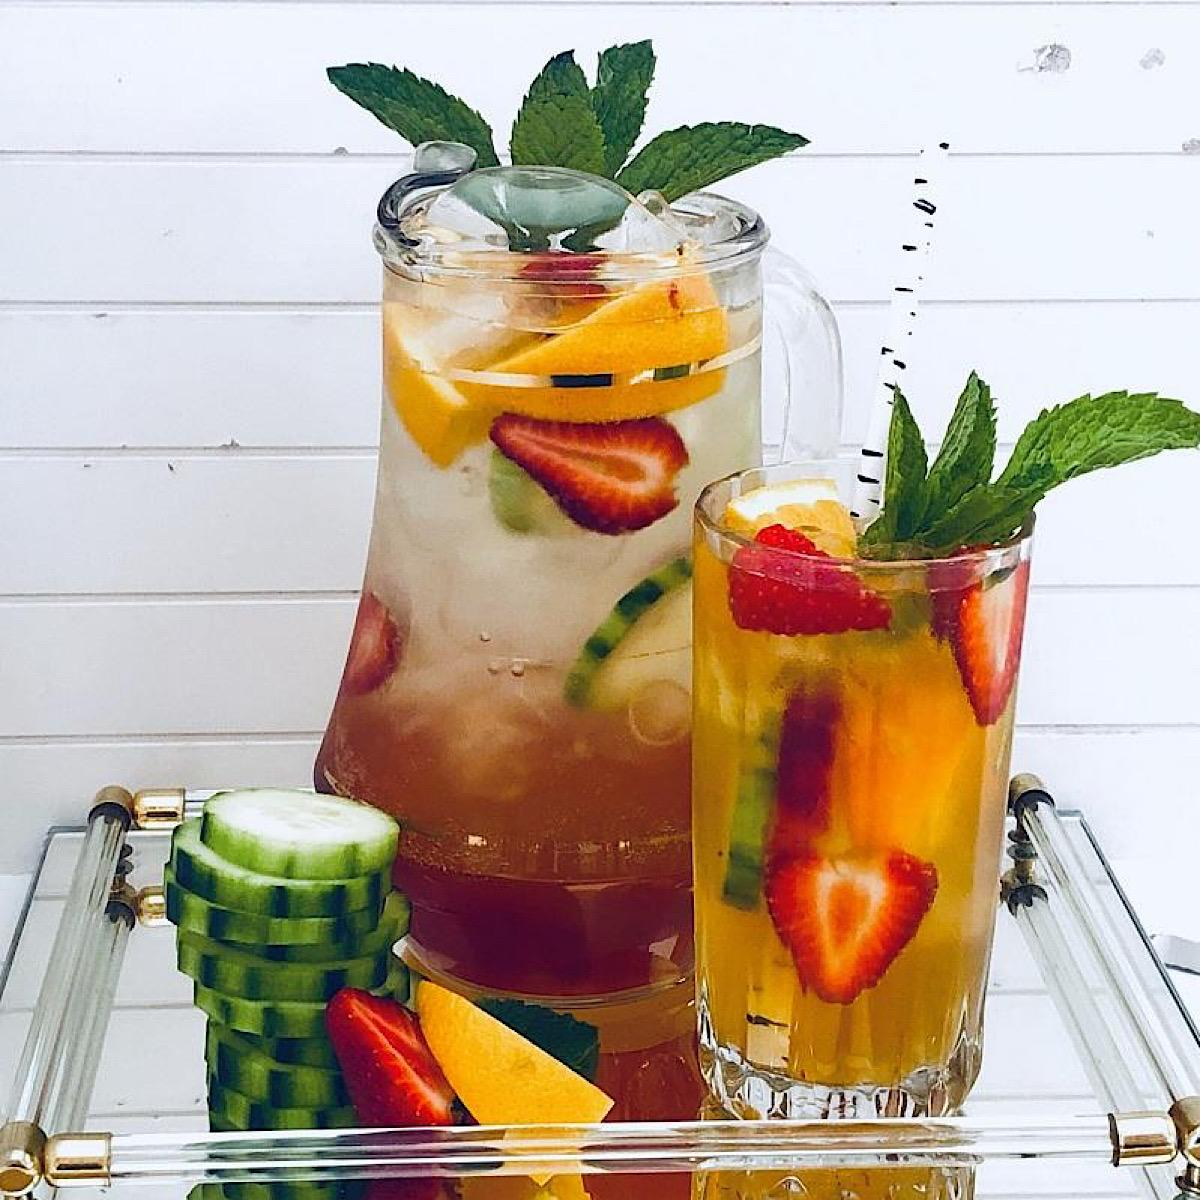 Pitcher of Sangria with cucumbers and Pimms Cup